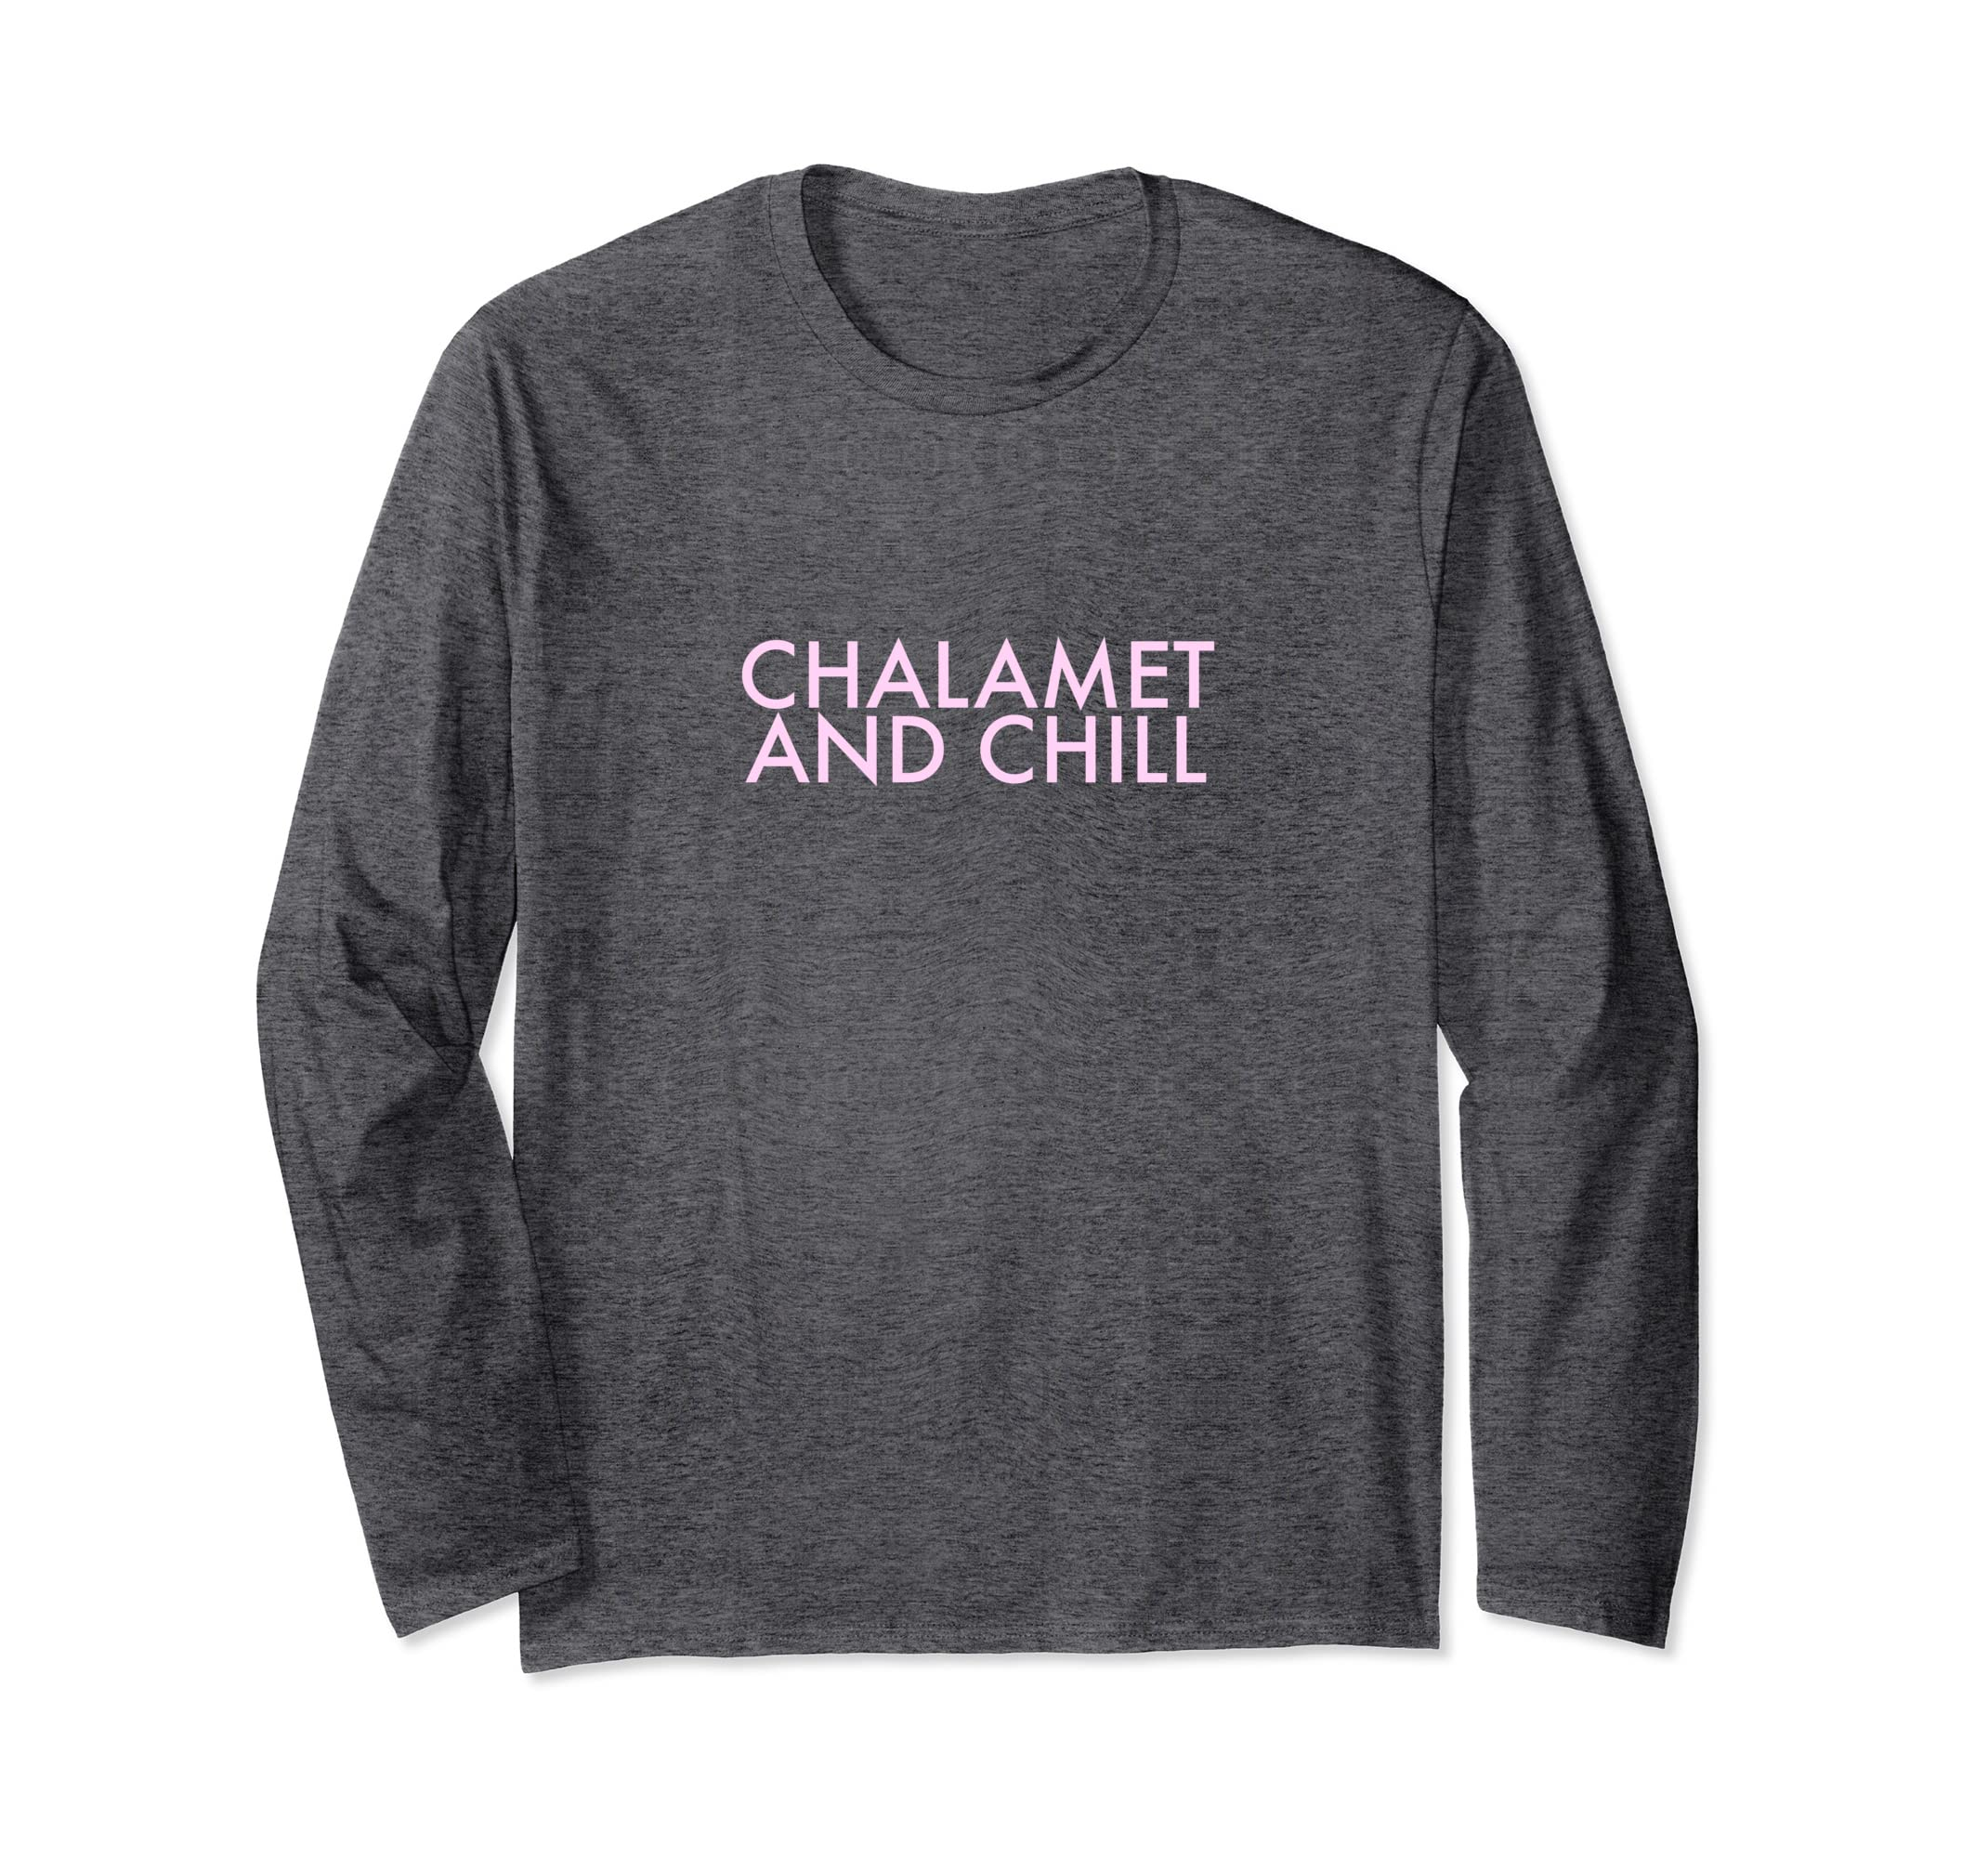 49c4d02504e Amazon.com: Chalamet and Chill Long Sleeve Shirt: Clothing